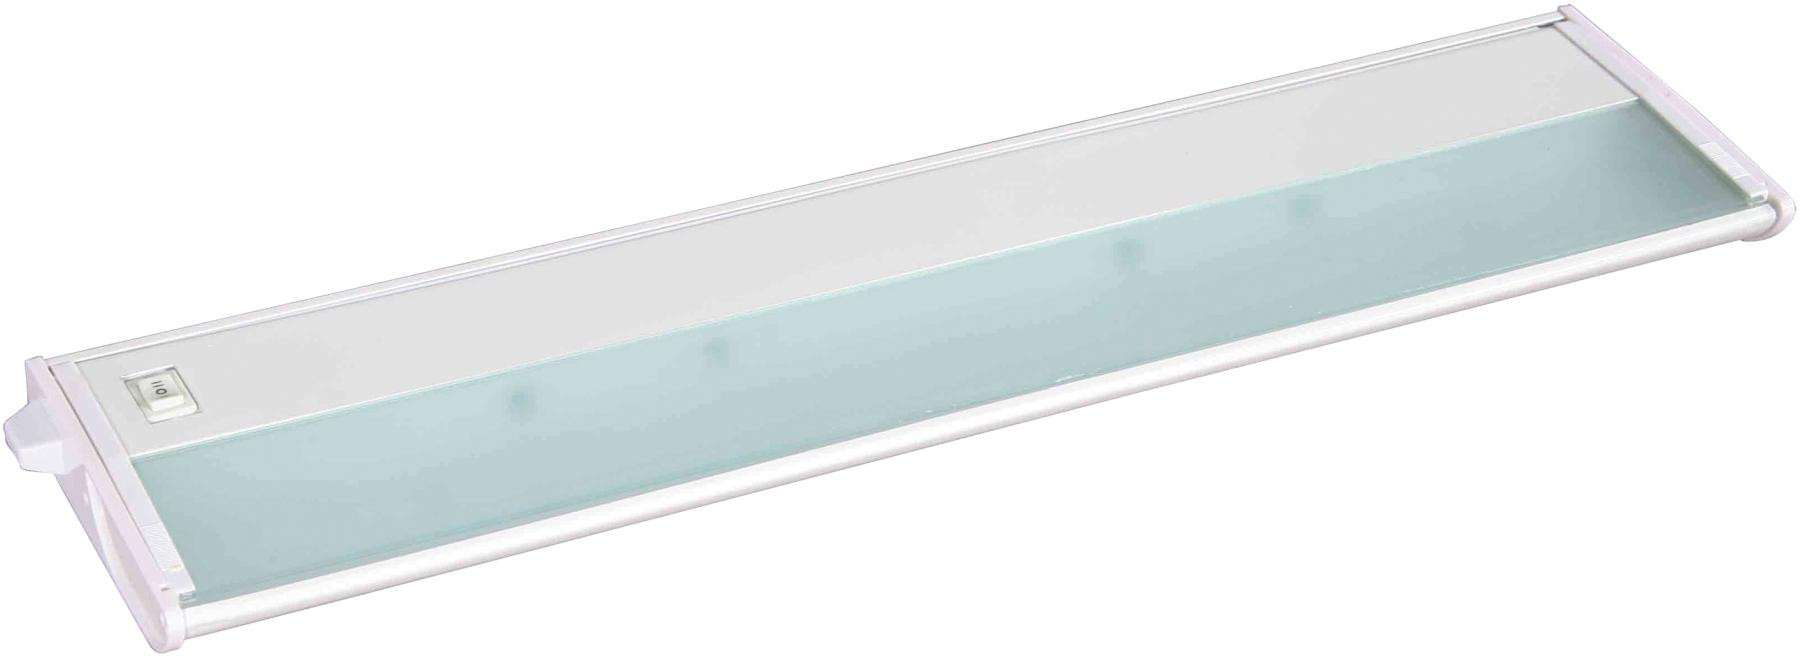 "Maxim 87842WT CounterMax MX-X120c 21"" 3-Light 120V Xenon in White."